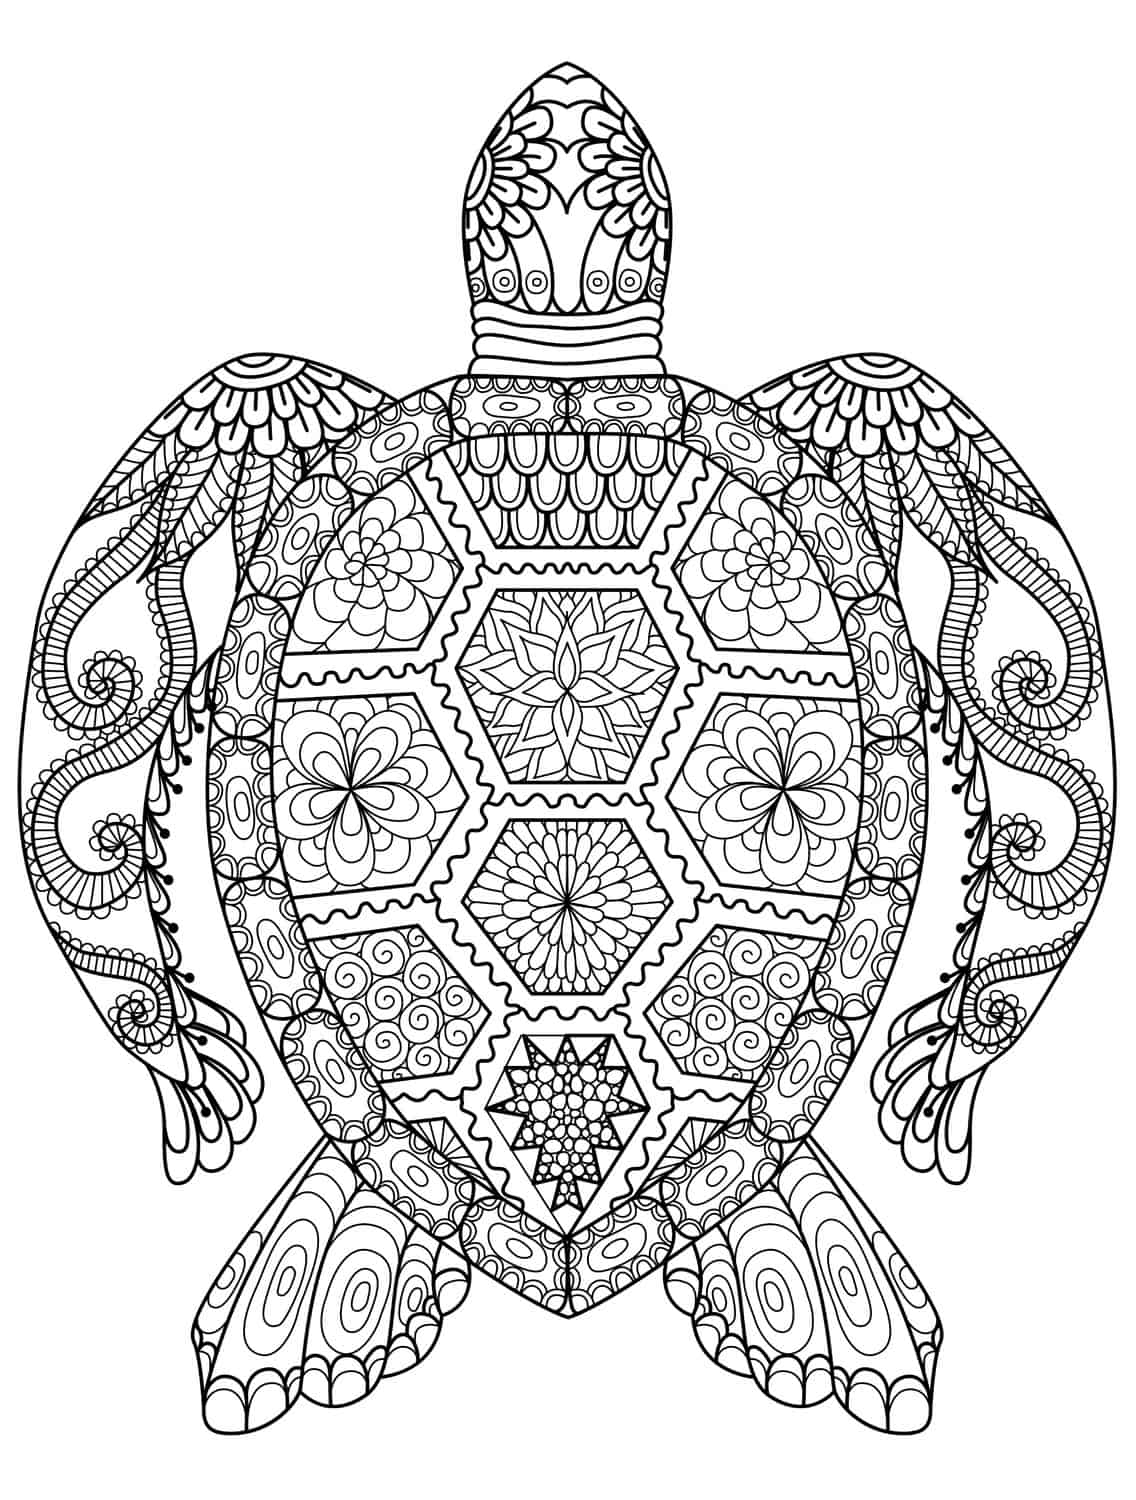 20 Gorgeous Free Printable Adult Coloring Pages Page 3 Of 22 Free Printable Color Pages